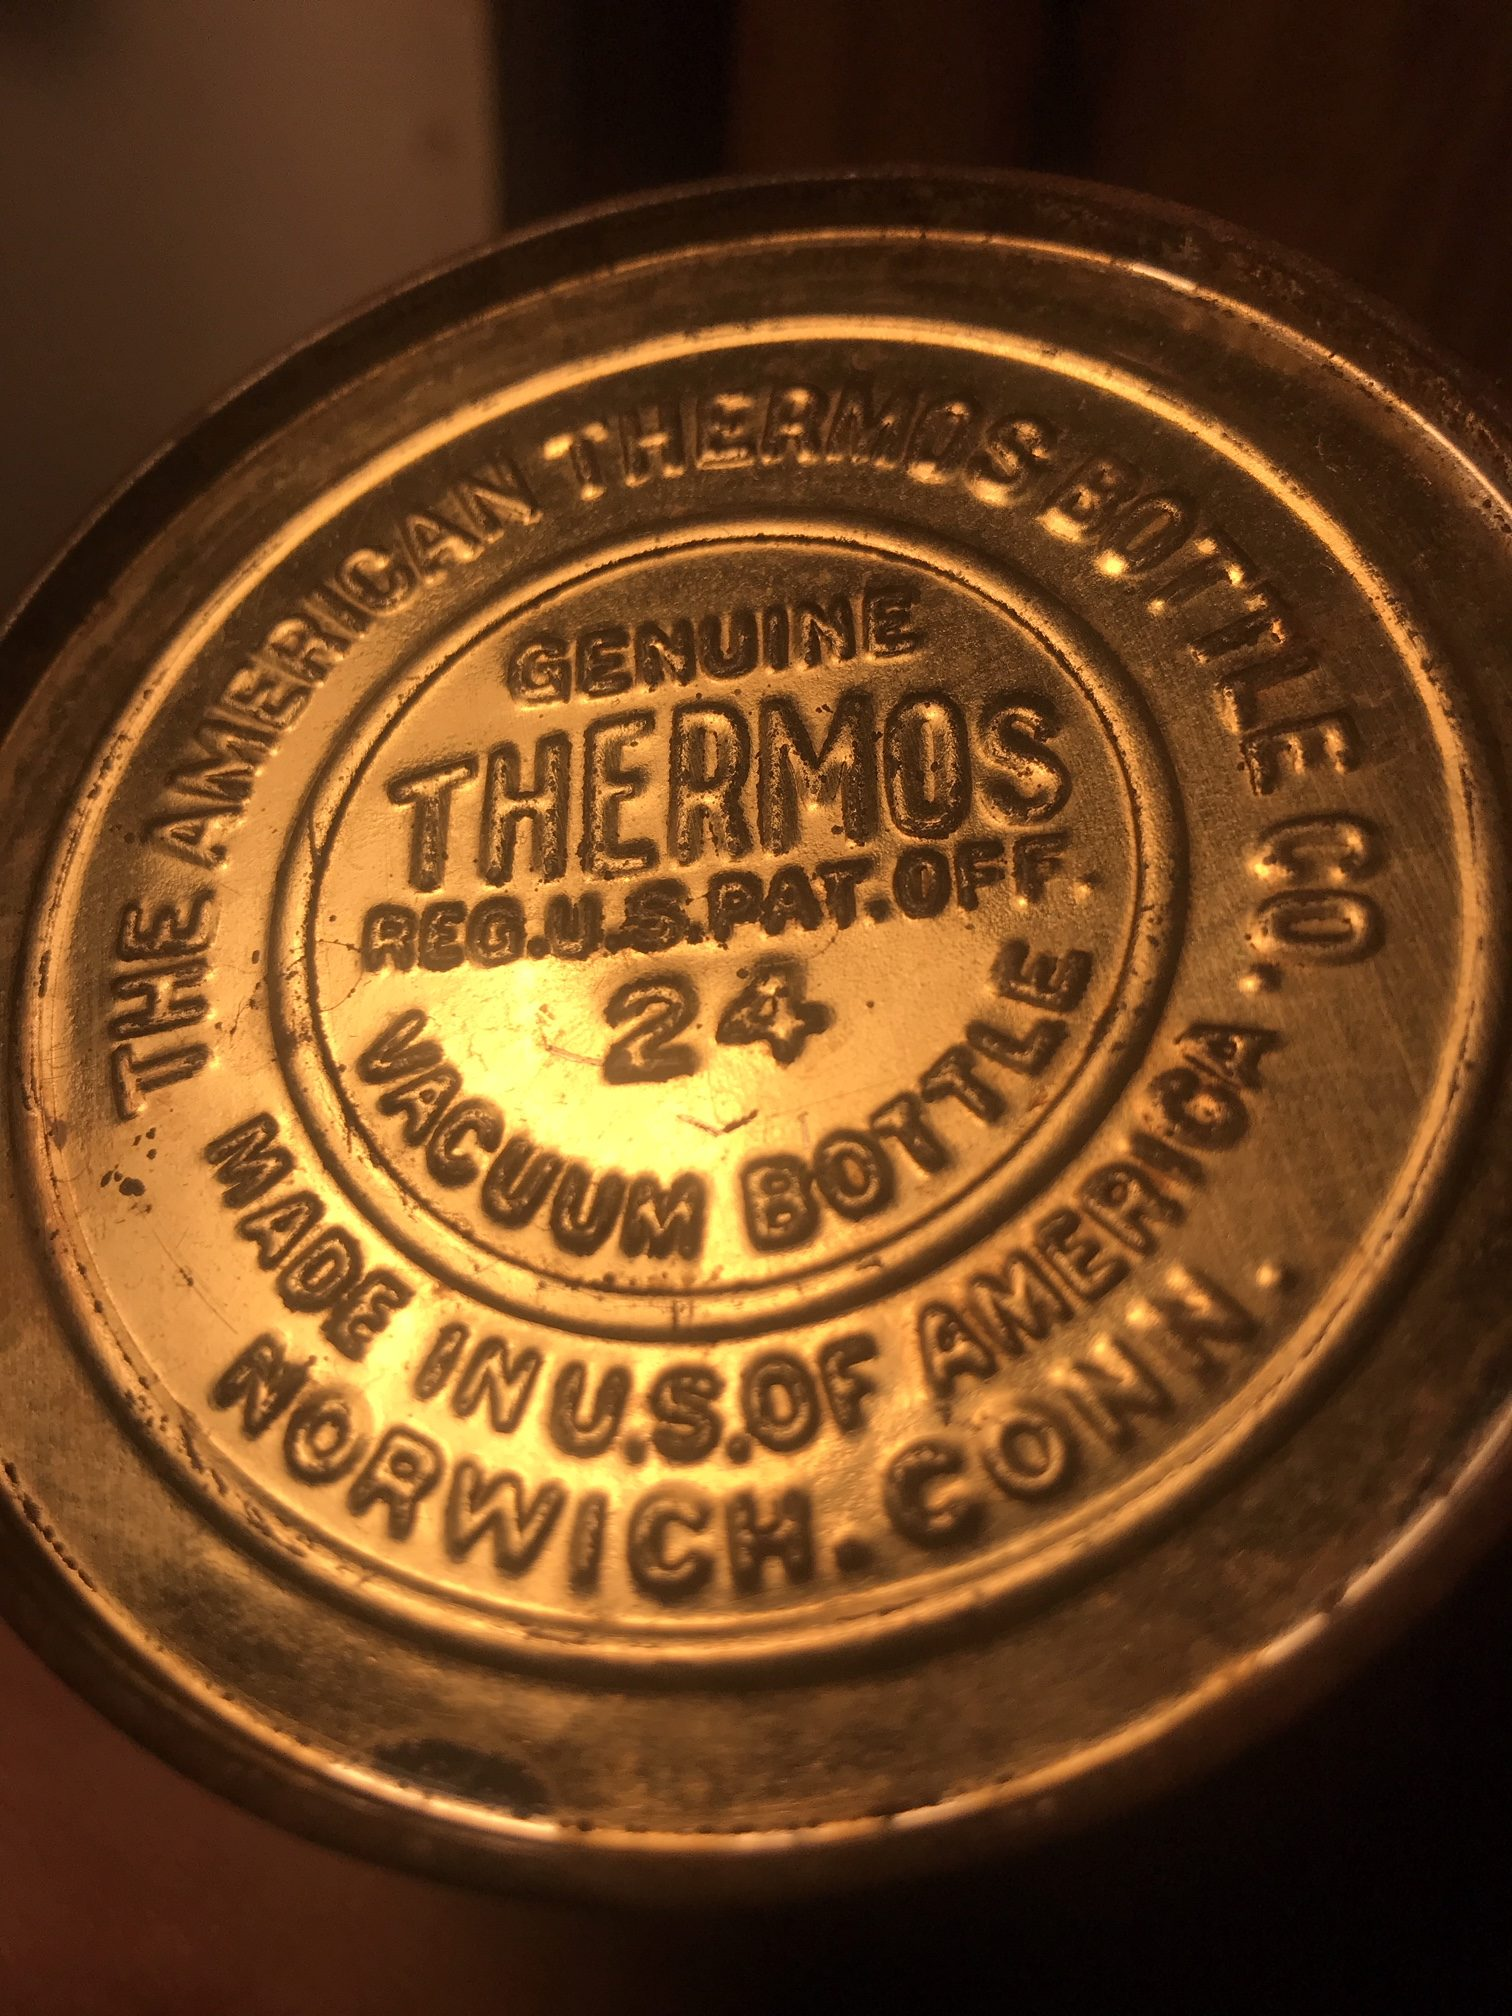 Thermos Bottle Bottom